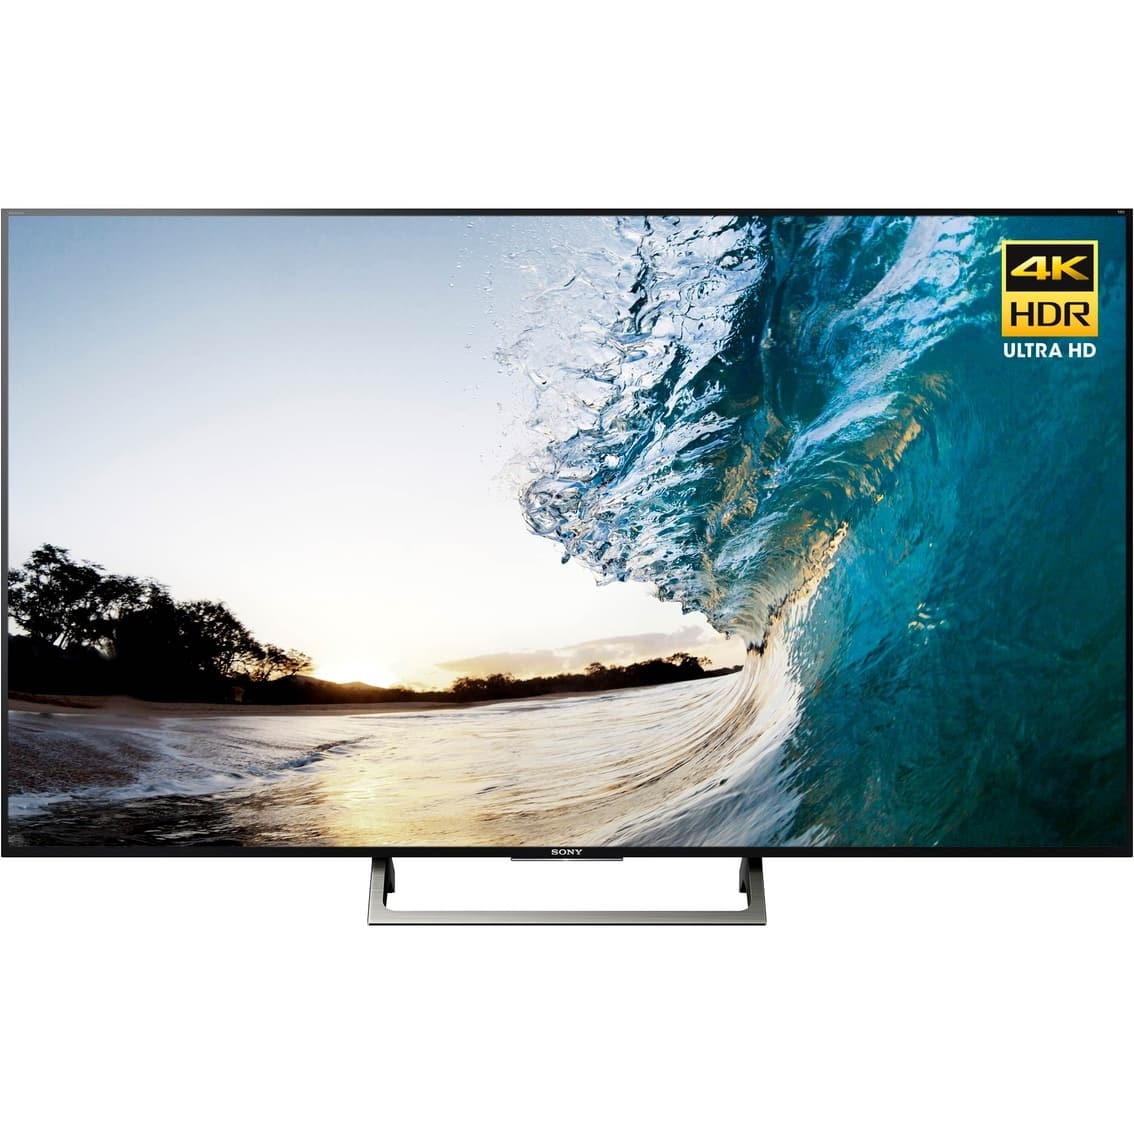 AAFES   SONY 75 in. 4K HDR LED 120Hz Smart TV XBR-75X850E  $1529.10